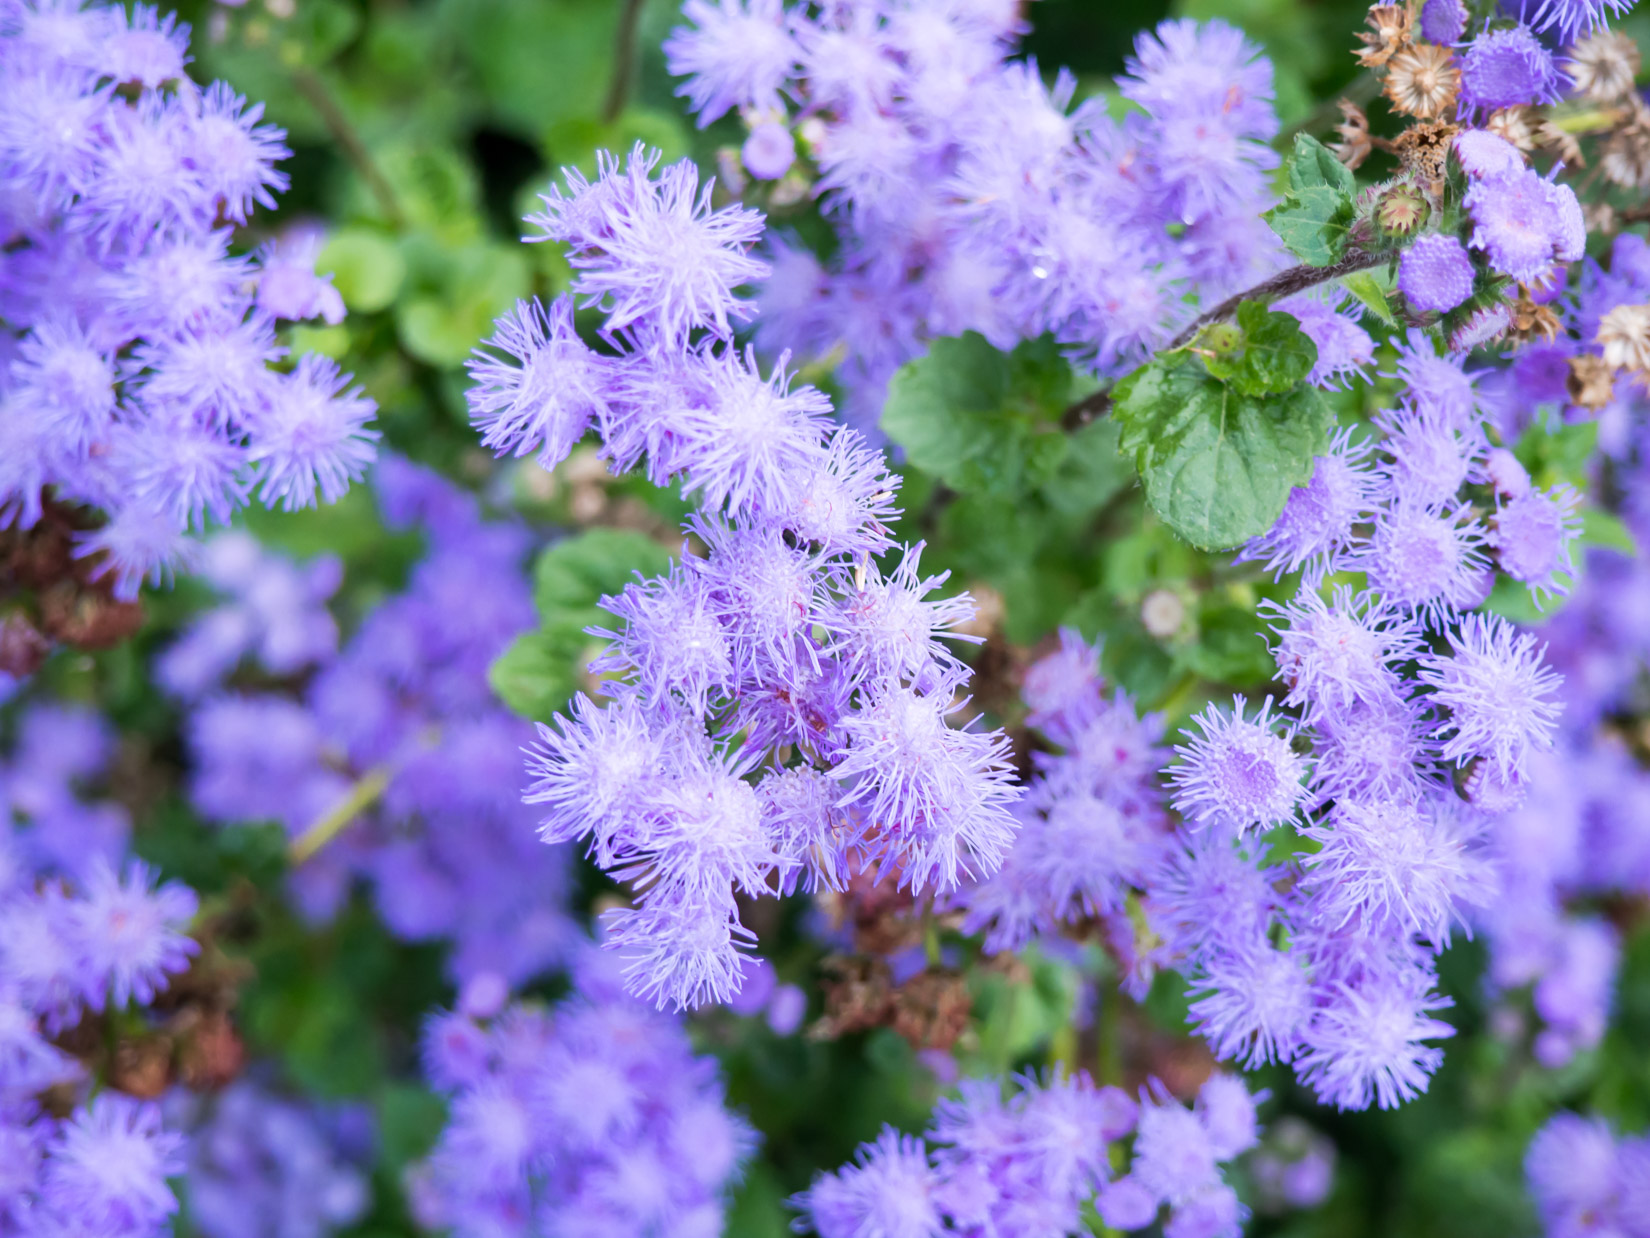 Purple Flowers in Garden